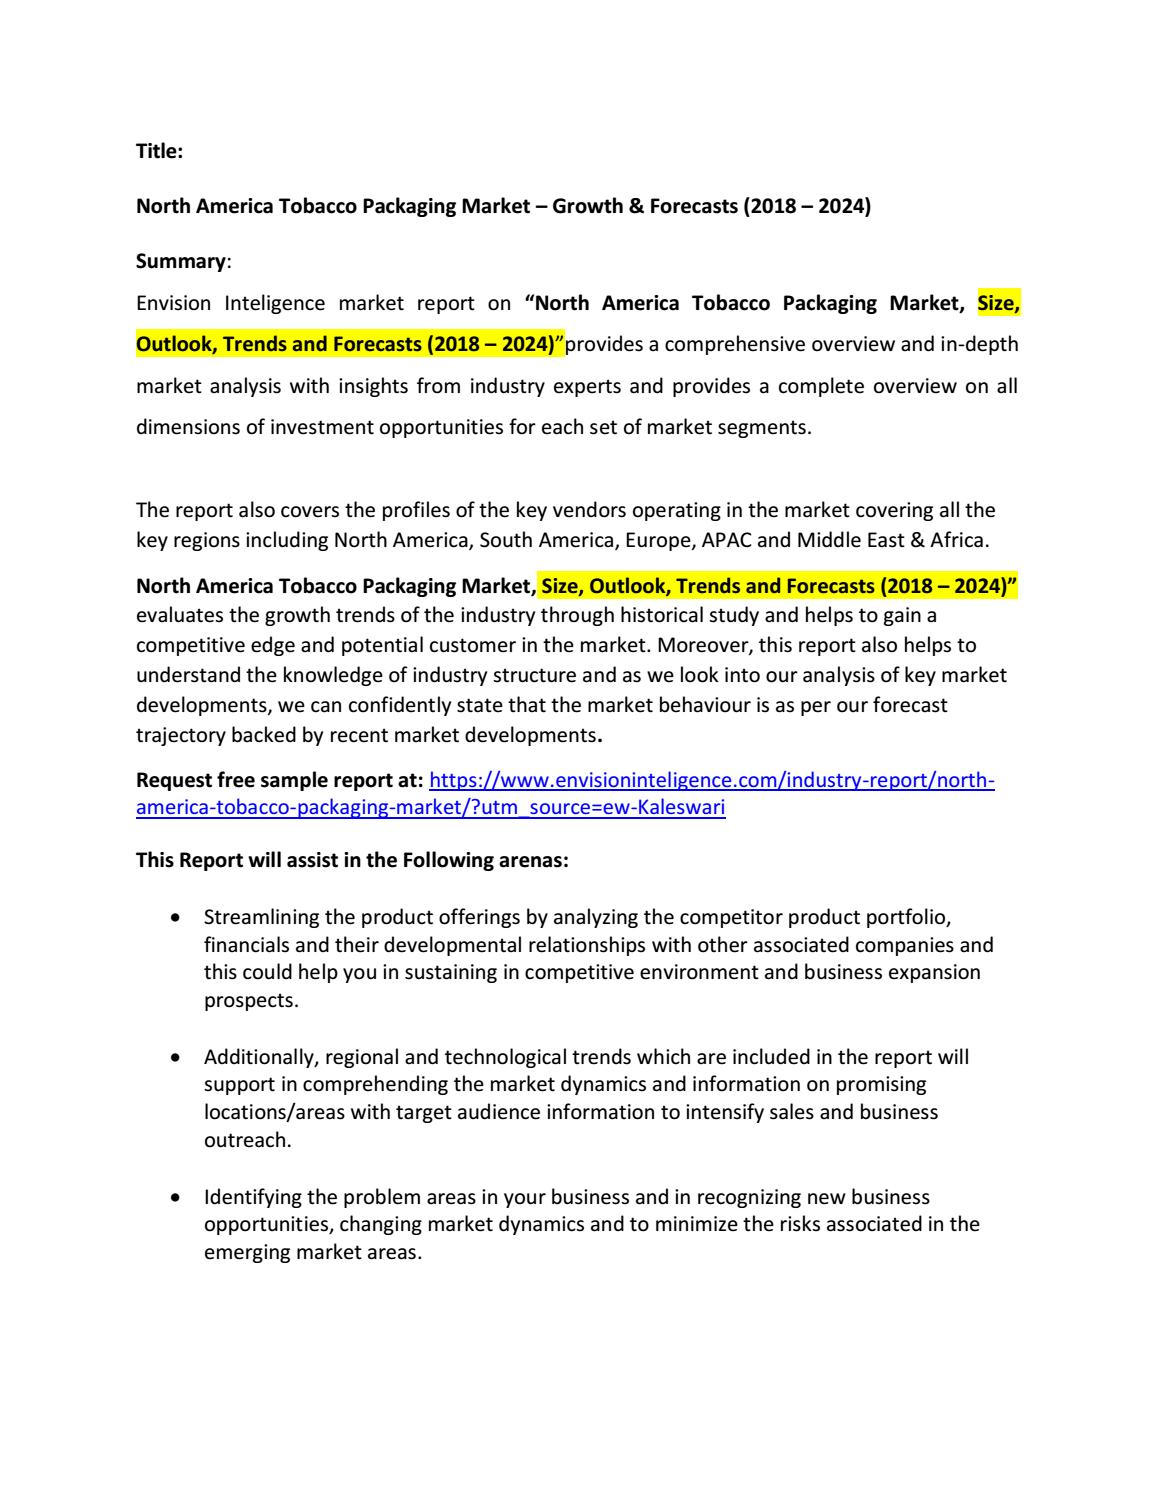 North America Tobacco Packaging Market – Growth & Forecasts